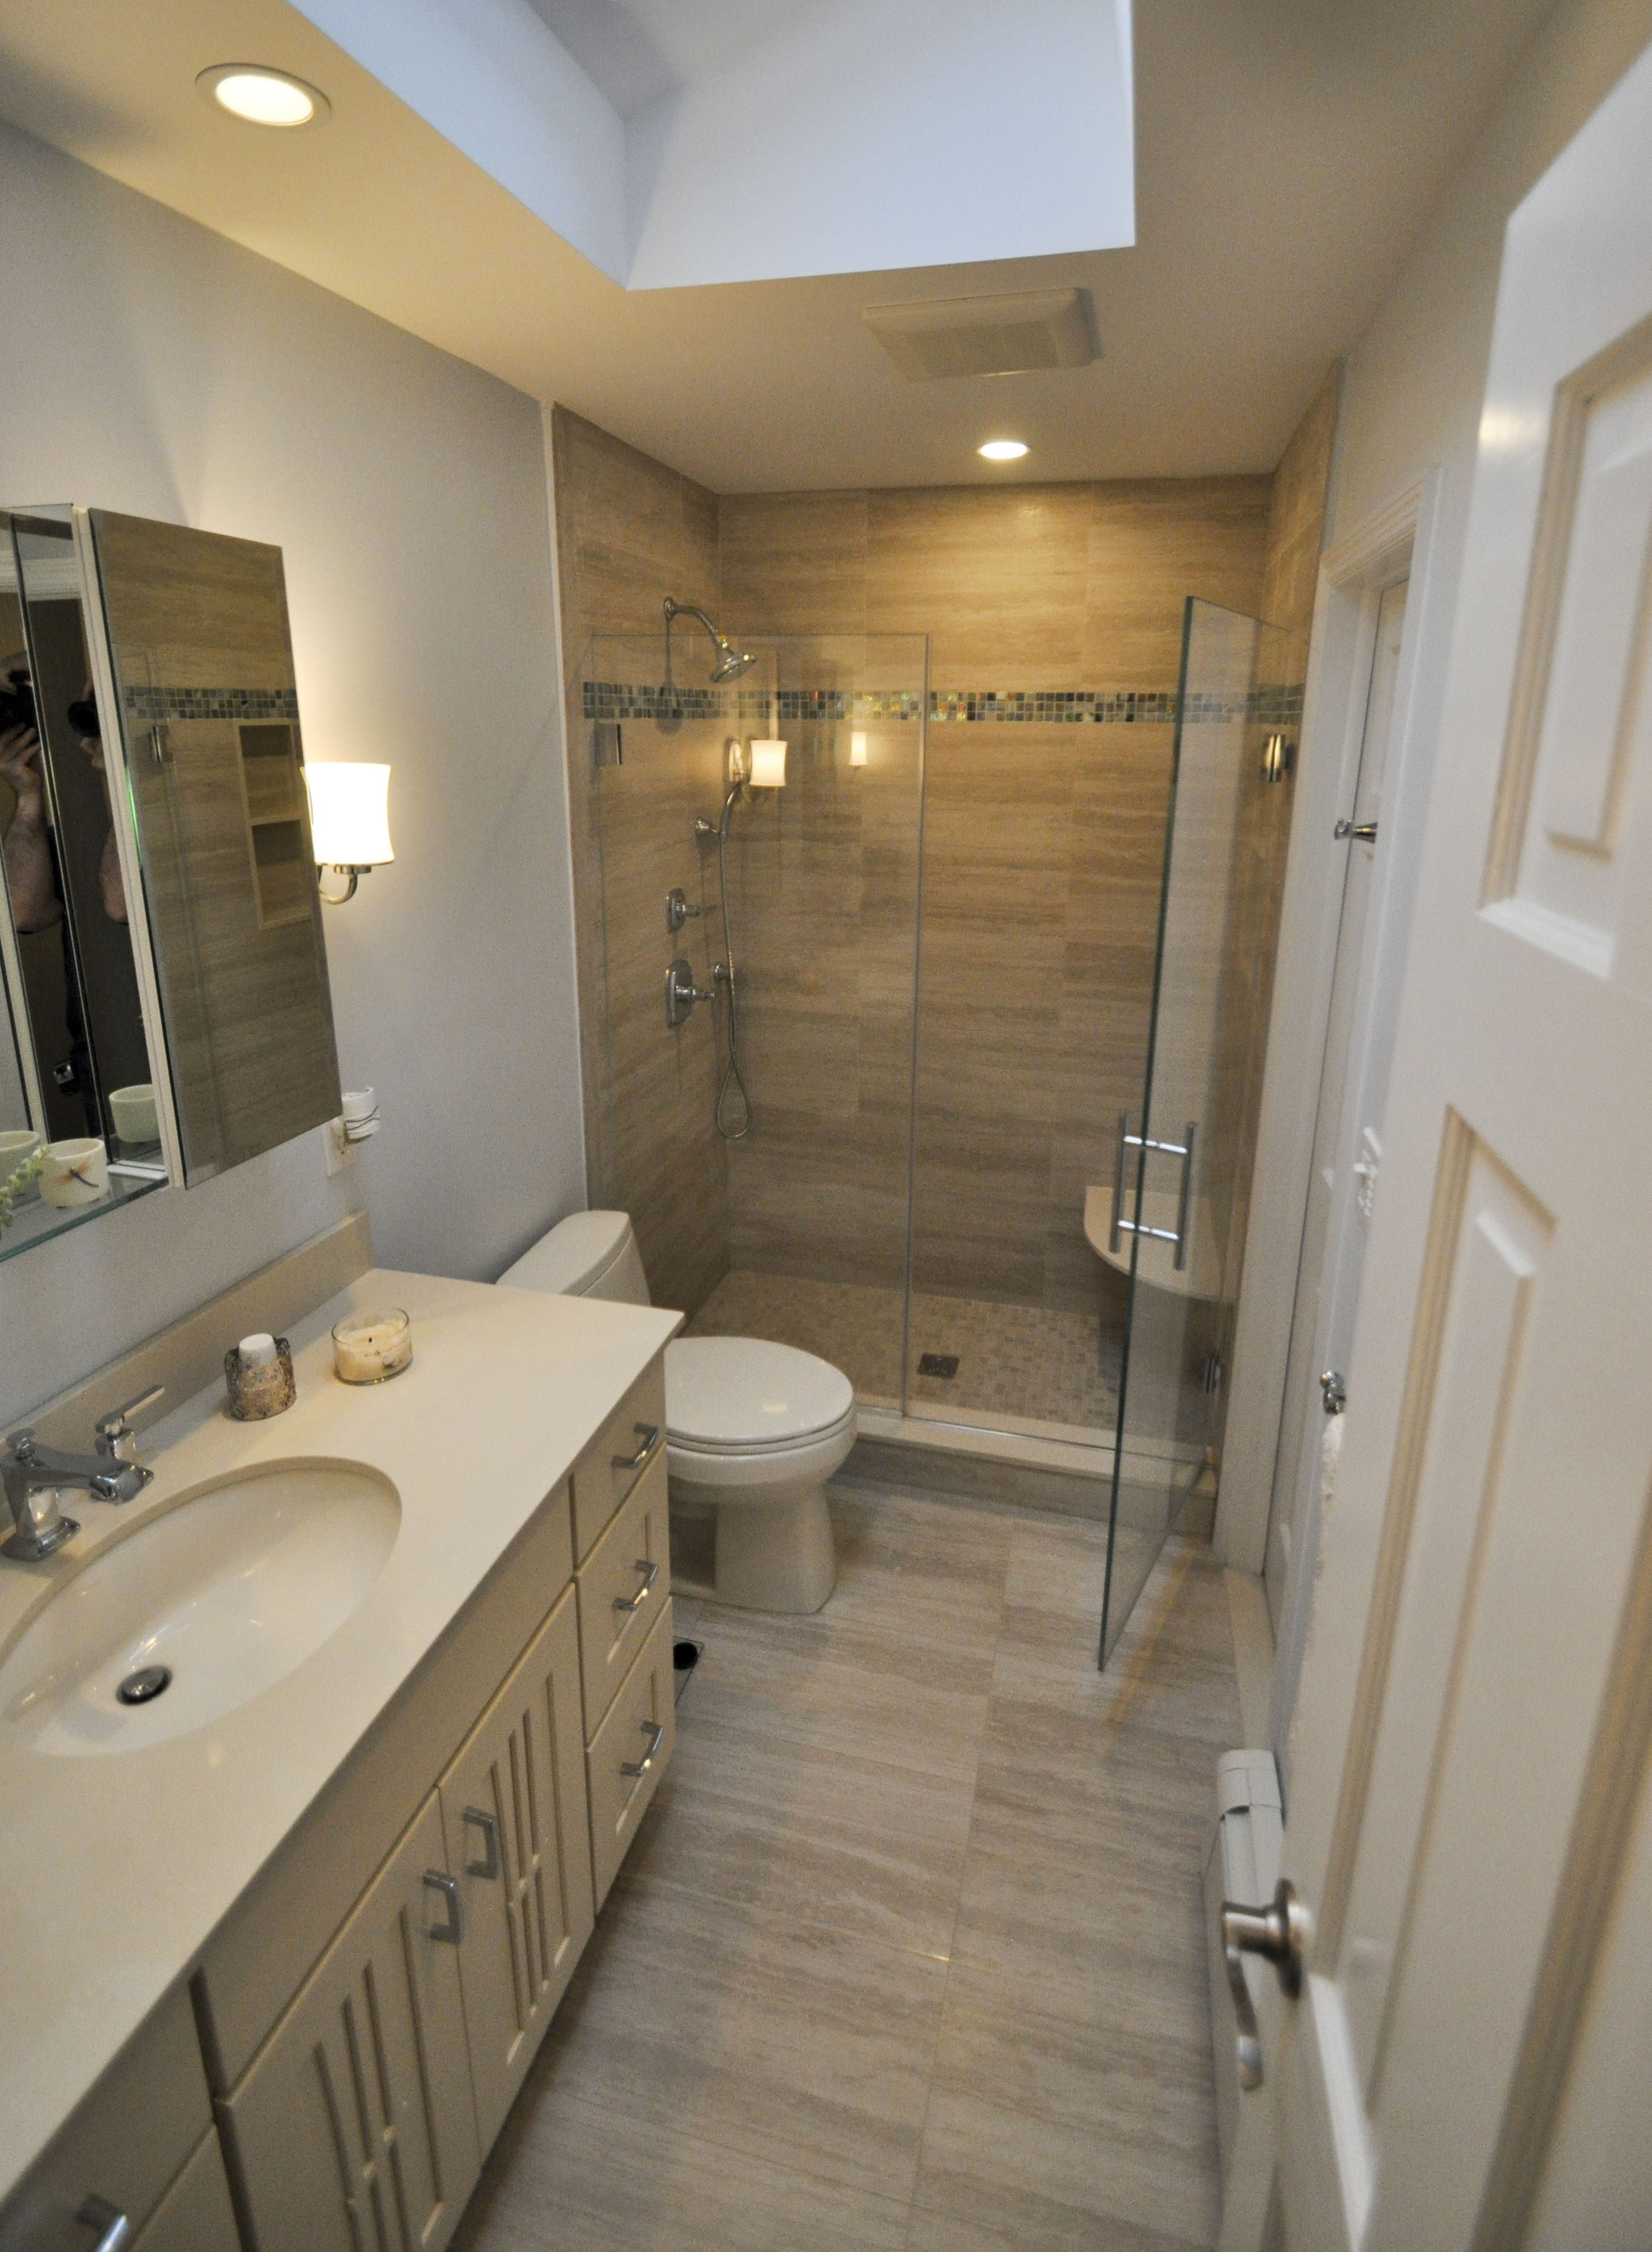 9x5 Bathroom With Stand Up Shower Small Bathroom Layout Bathroom Layout Bathroom Floor Plans